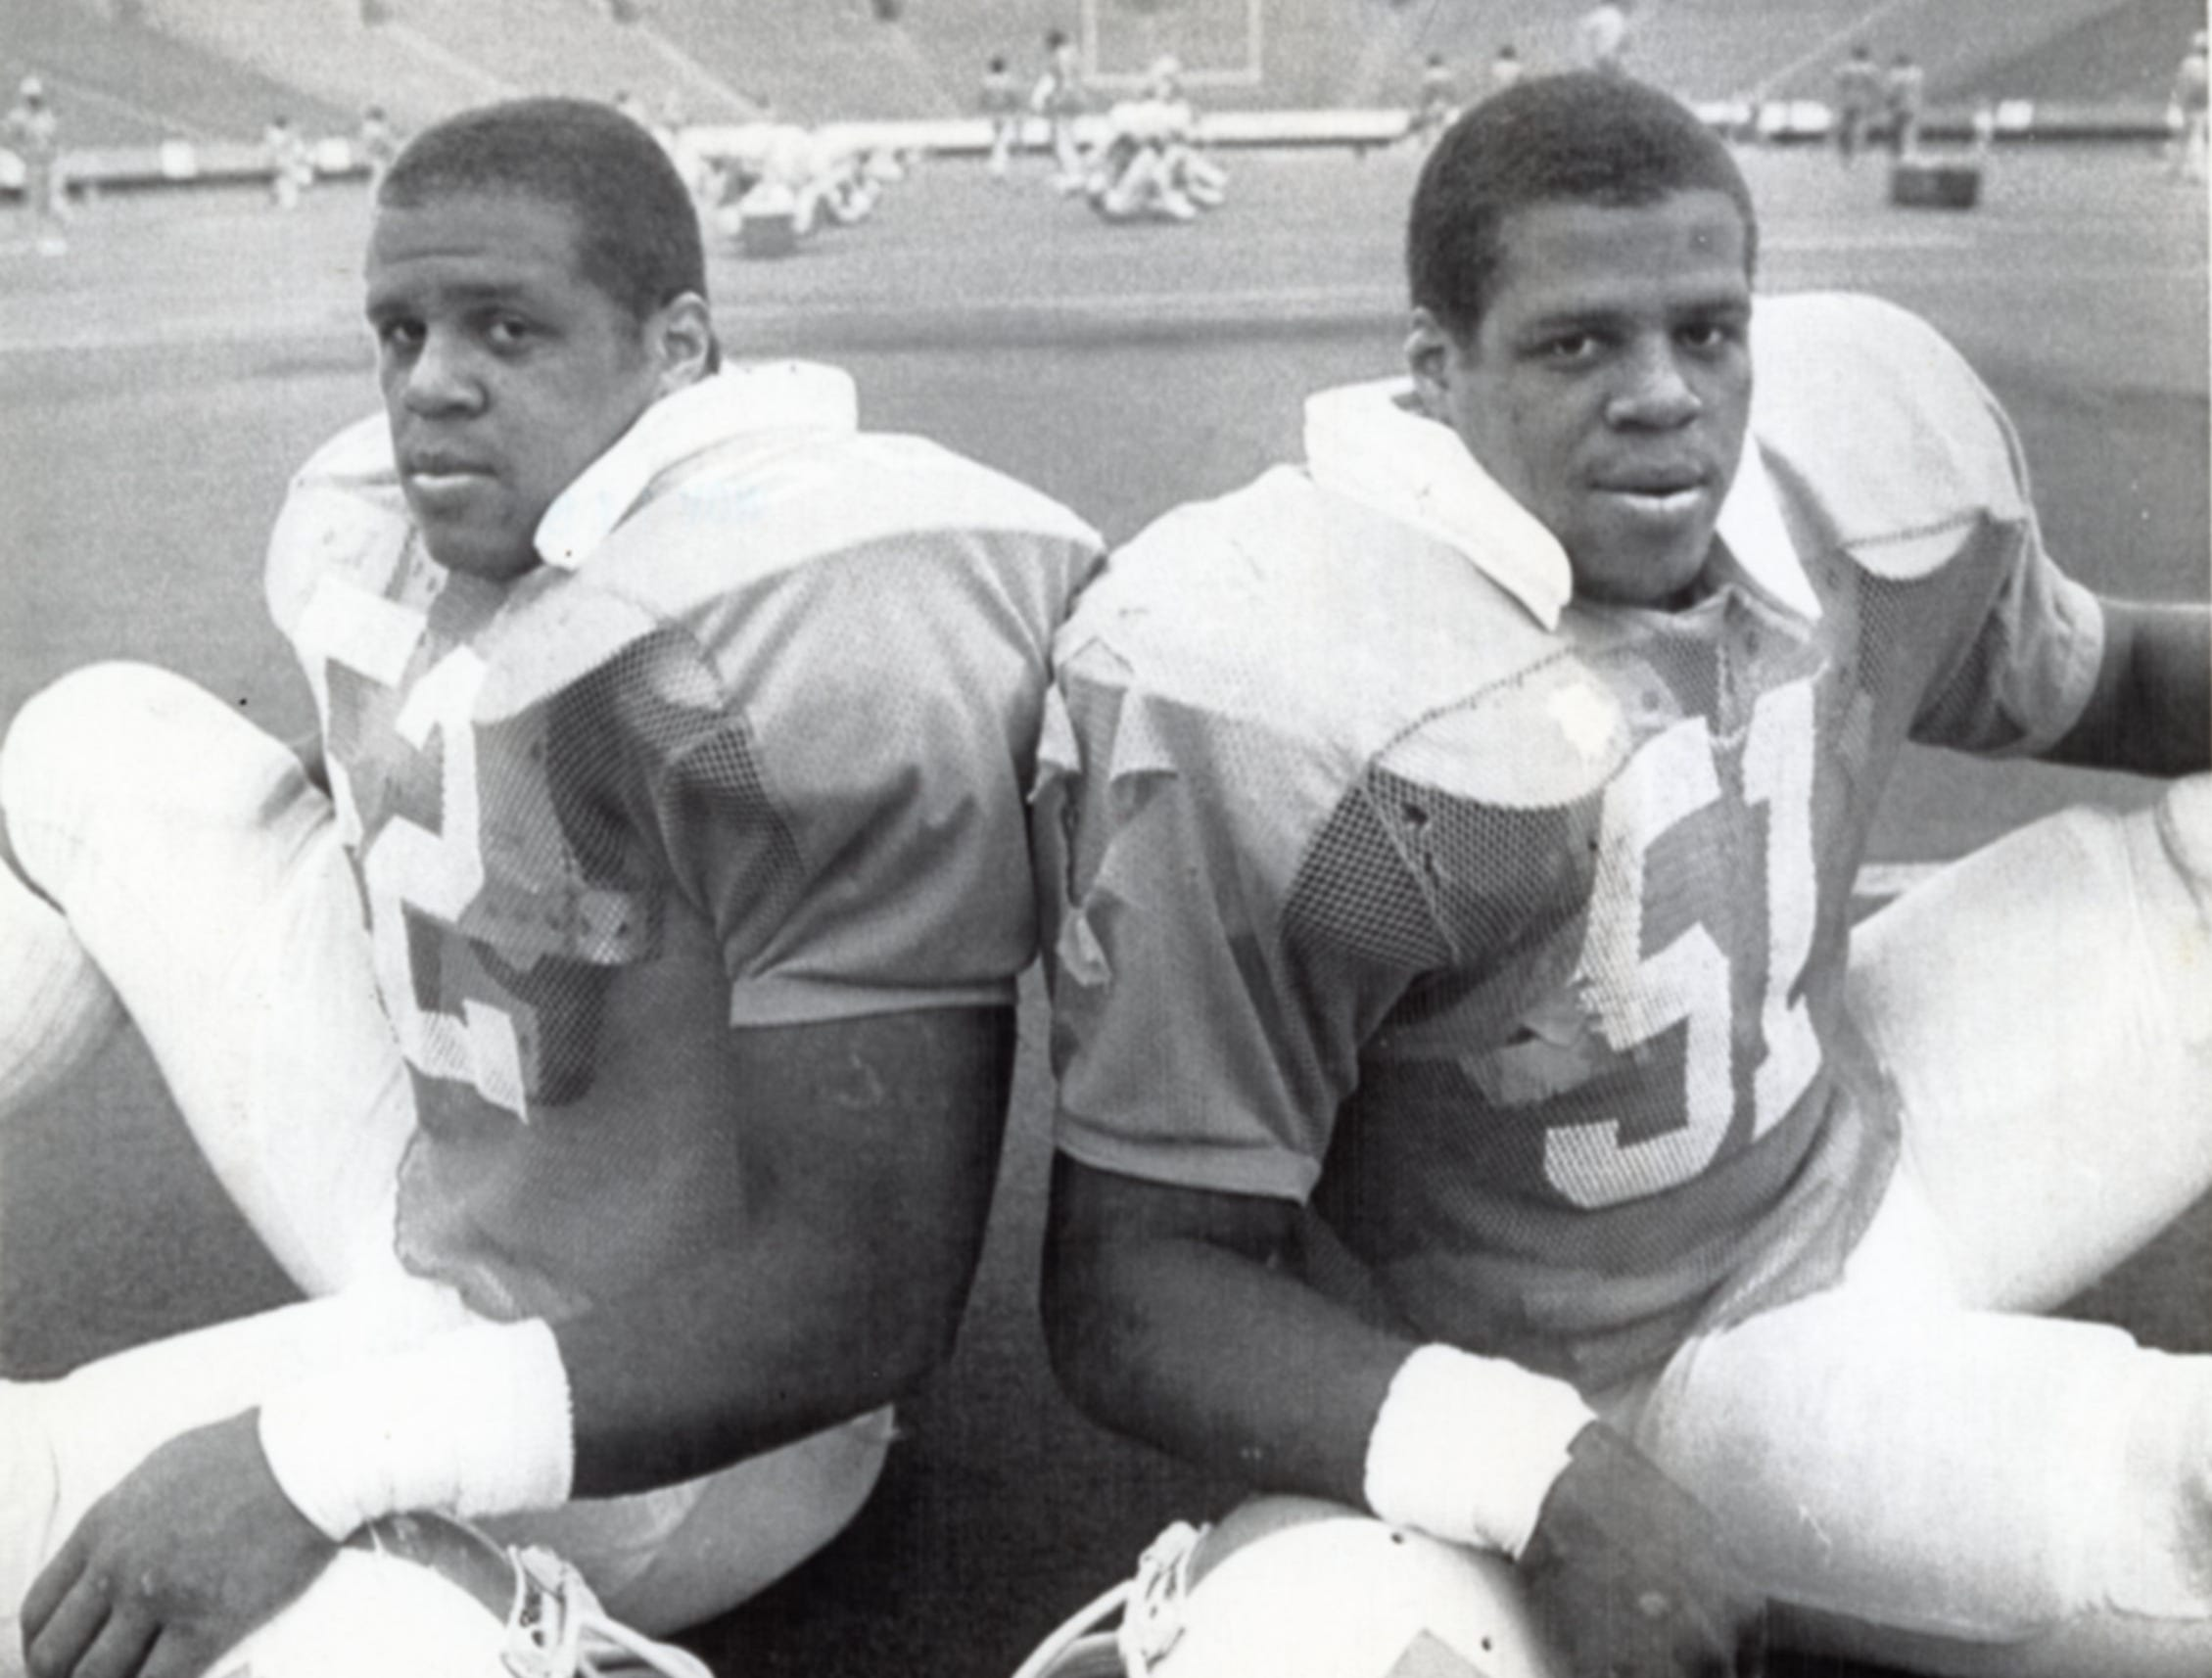 UT football players Raleigh, left, and Reggie McKenzie at the 51st annual Sun Bowl in El Paso, TX, December, 1984.